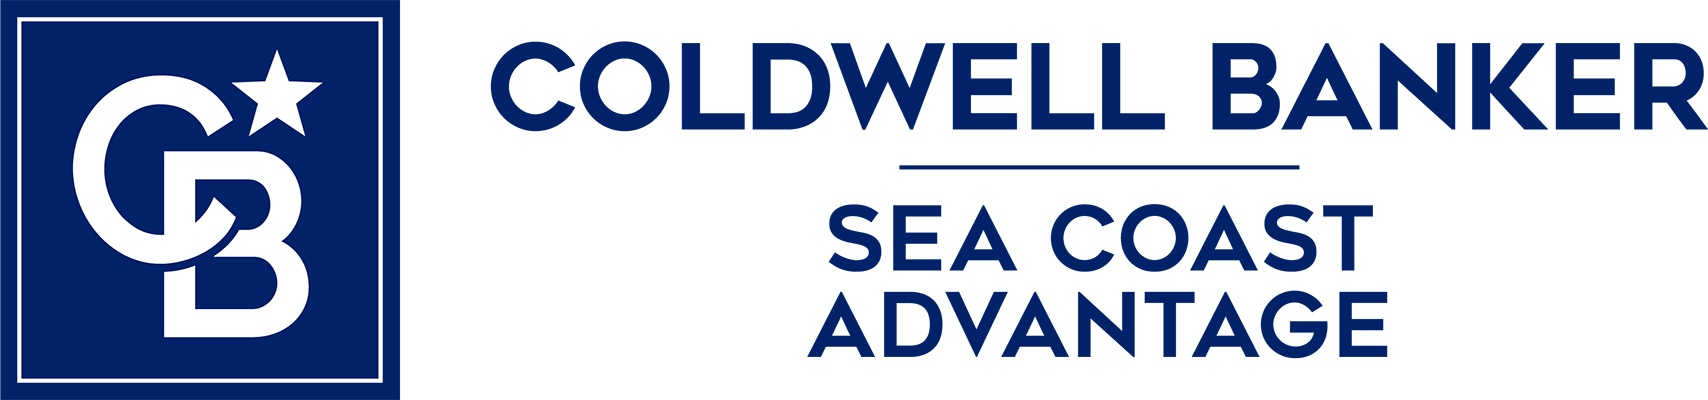 Tory Kuehner - Coldwell Banker Sea Coast Advantage Realty